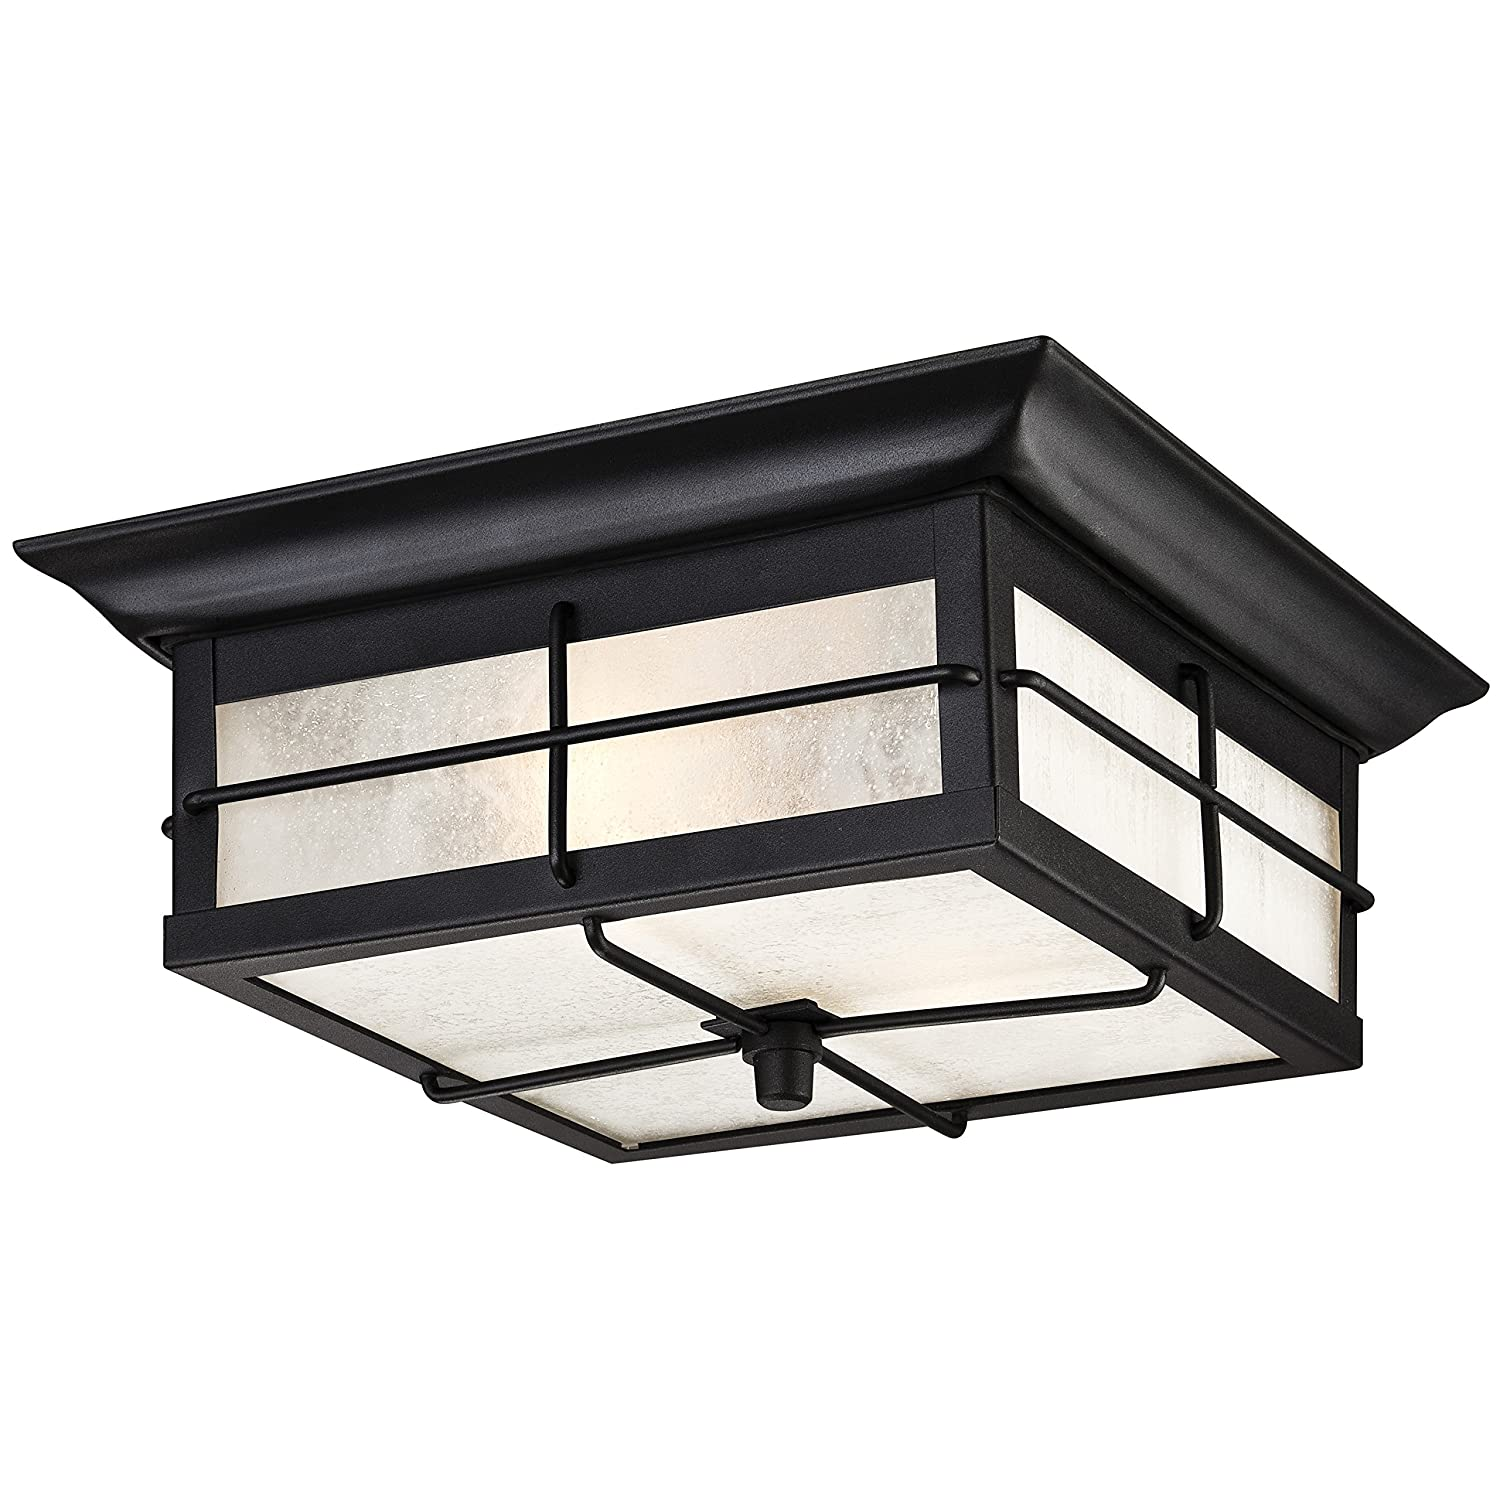 Amazon orwell 2 light outdoor flush mount fixture textured amazon orwell 2 light outdoor flush mount fixture textured black 2 pack home improvement aloadofball Images